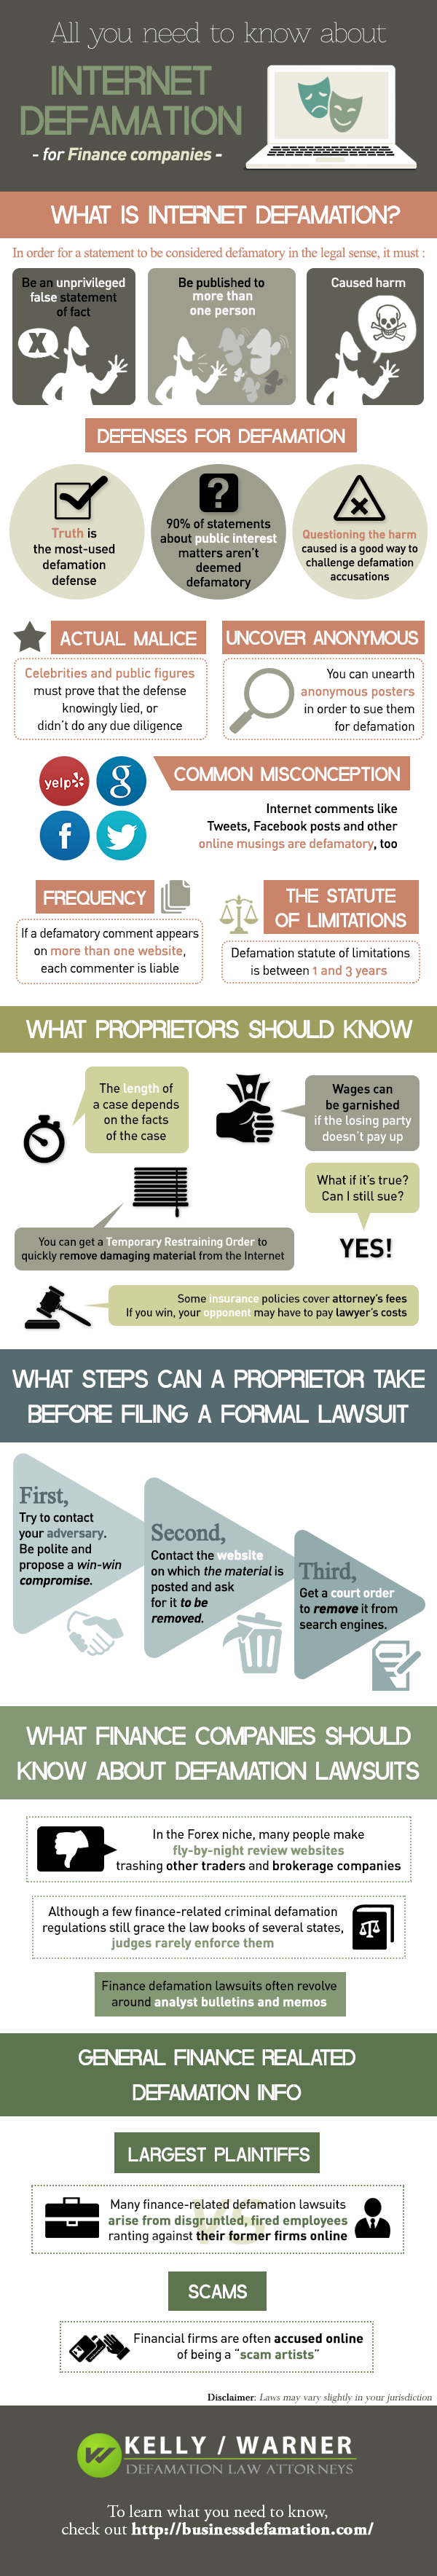 Financial Defamation infographic